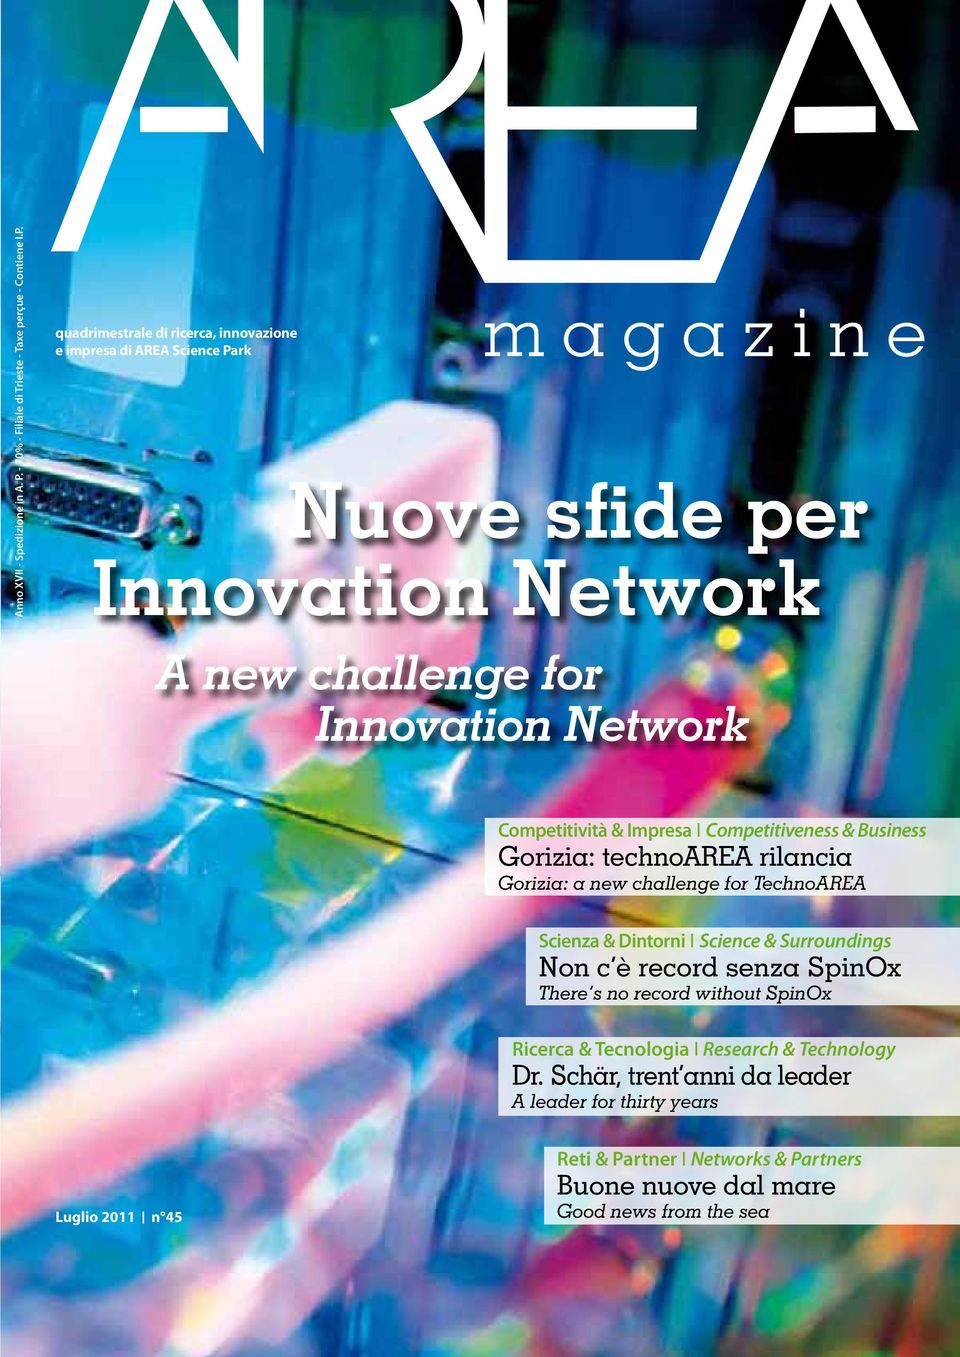 quadrimestrale di ricerca, innovazione e impresa di AREA Science Park Nuove sfide per Innovation Network A new challenge for Innovation Network Competitività &